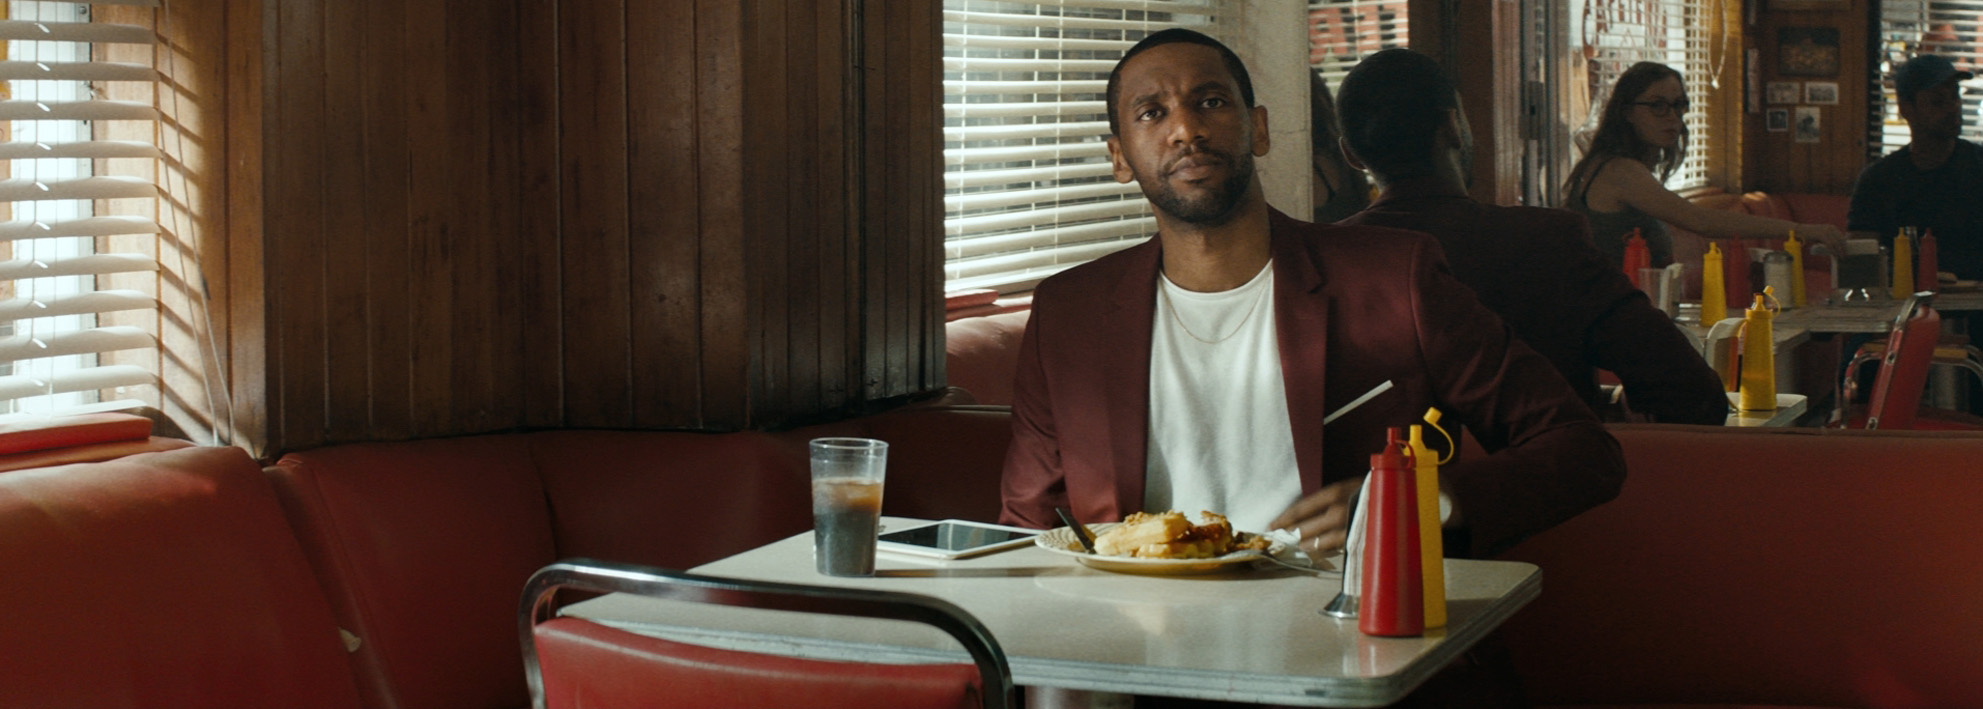 Seen+Noted: Procter & Gamble sparks conversations on racial bias and inequality with 'The Look'